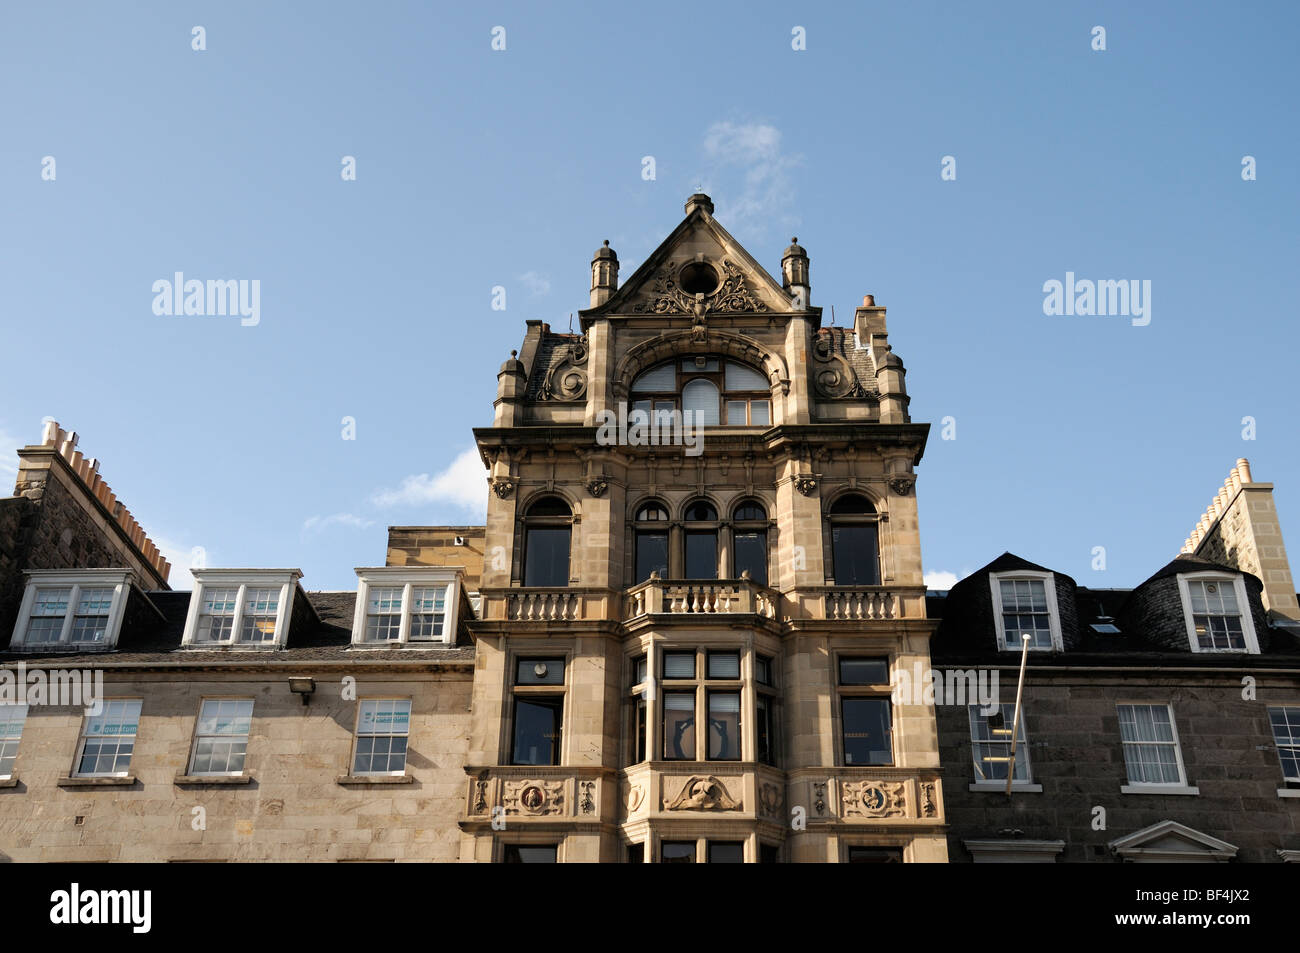 building front frontage facade edinburgh Scotland city centre historical architecture - Stock Image